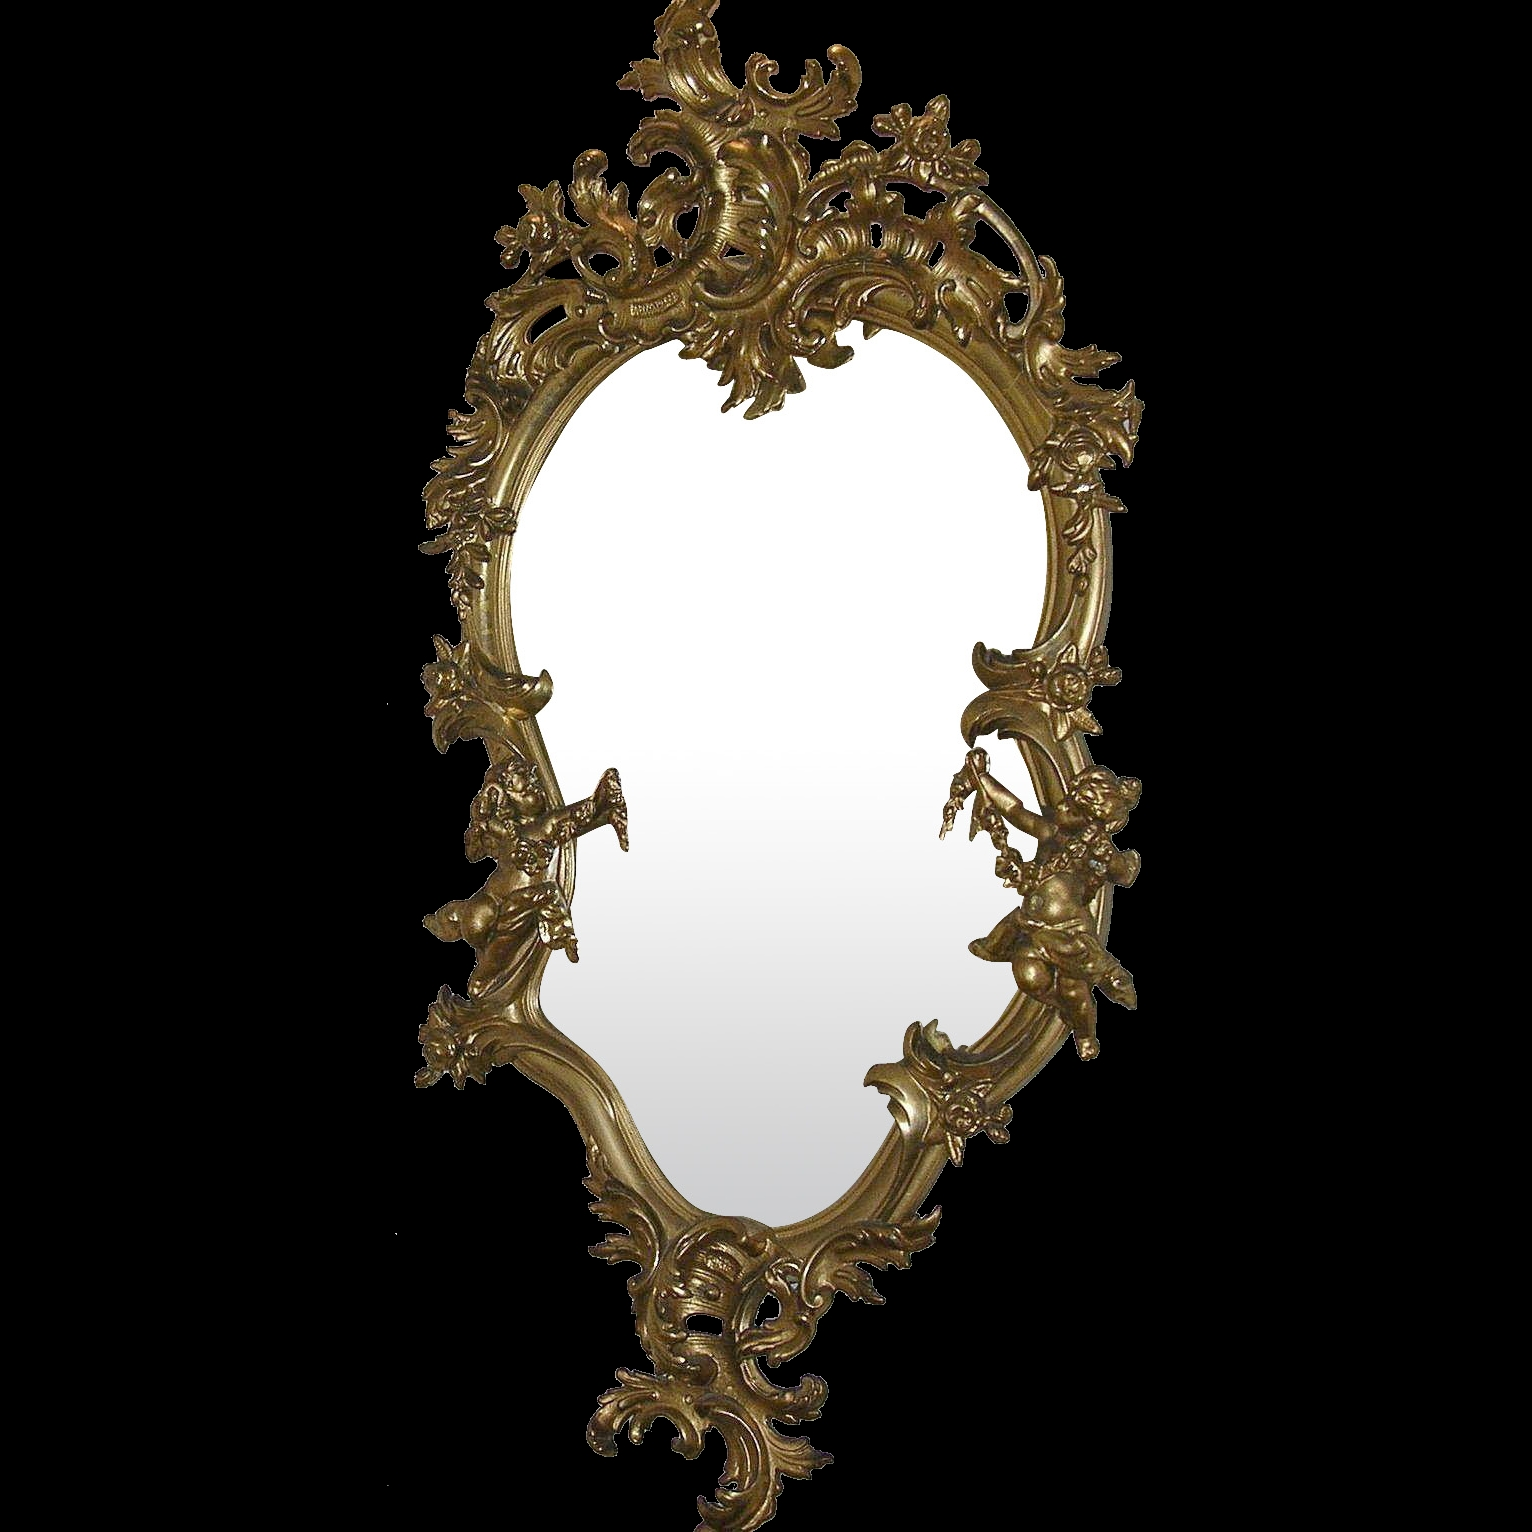 Rococo Gold Gilt Mirror 18th Century From Robbiaantique On Ru Lane Pertaining To Rococo Gold Mirror (Image 14 of 15)